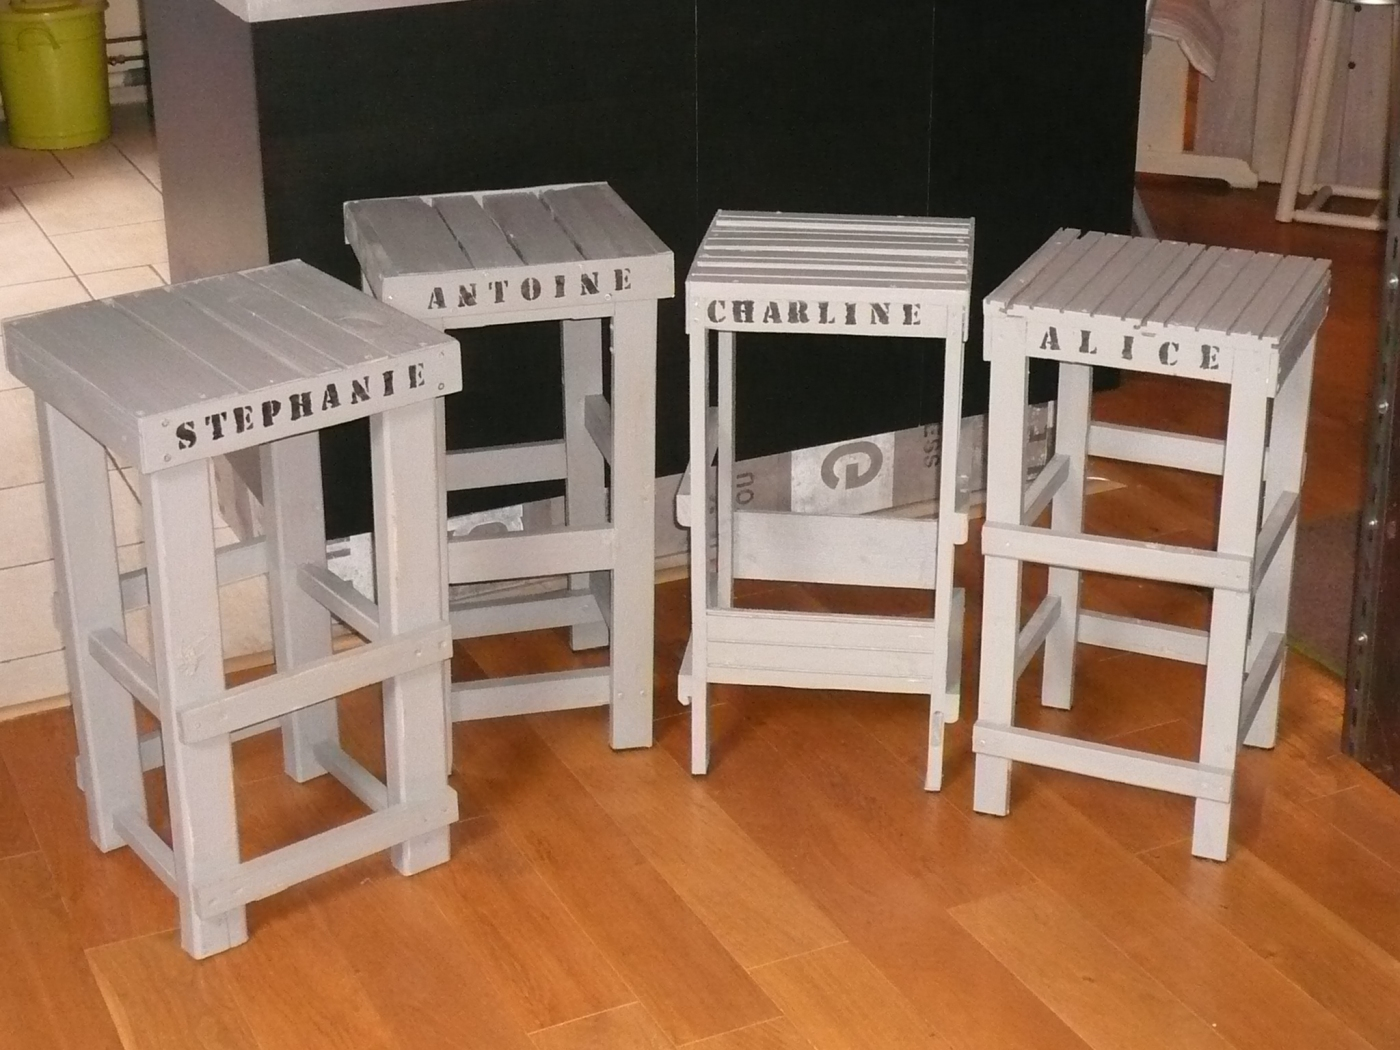 upcycling tabourets nominatifs la d coration autrement made in france. Black Bedroom Furniture Sets. Home Design Ideas